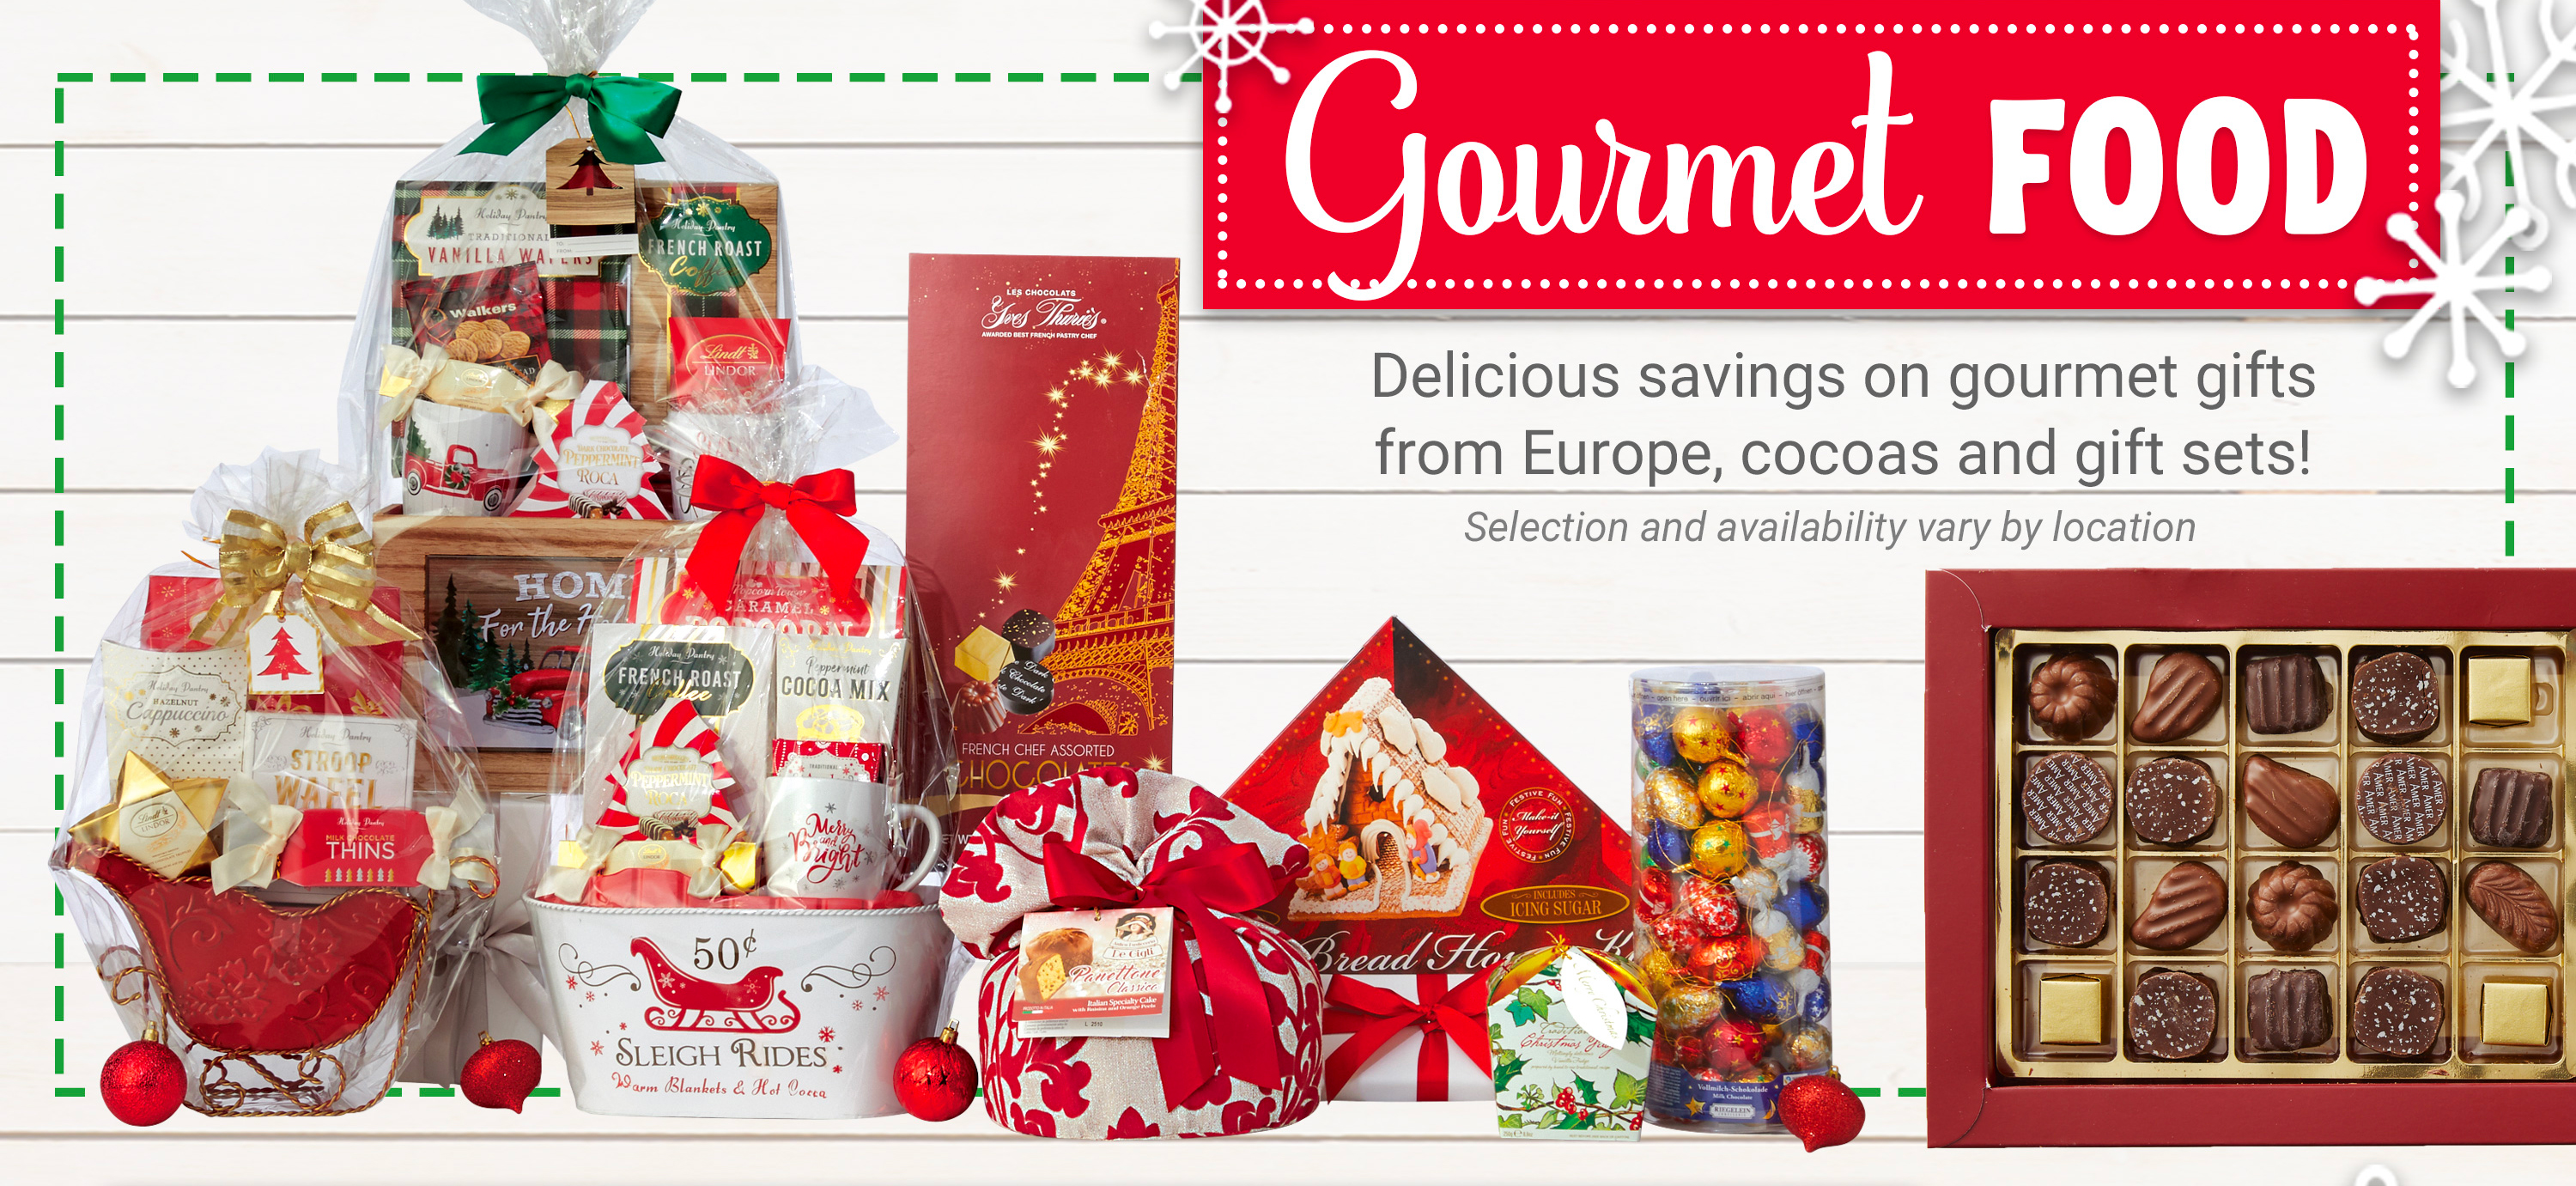 Gourmet Food - Delicious savings on gourmet fits form Europe, cocoas and gift sets!